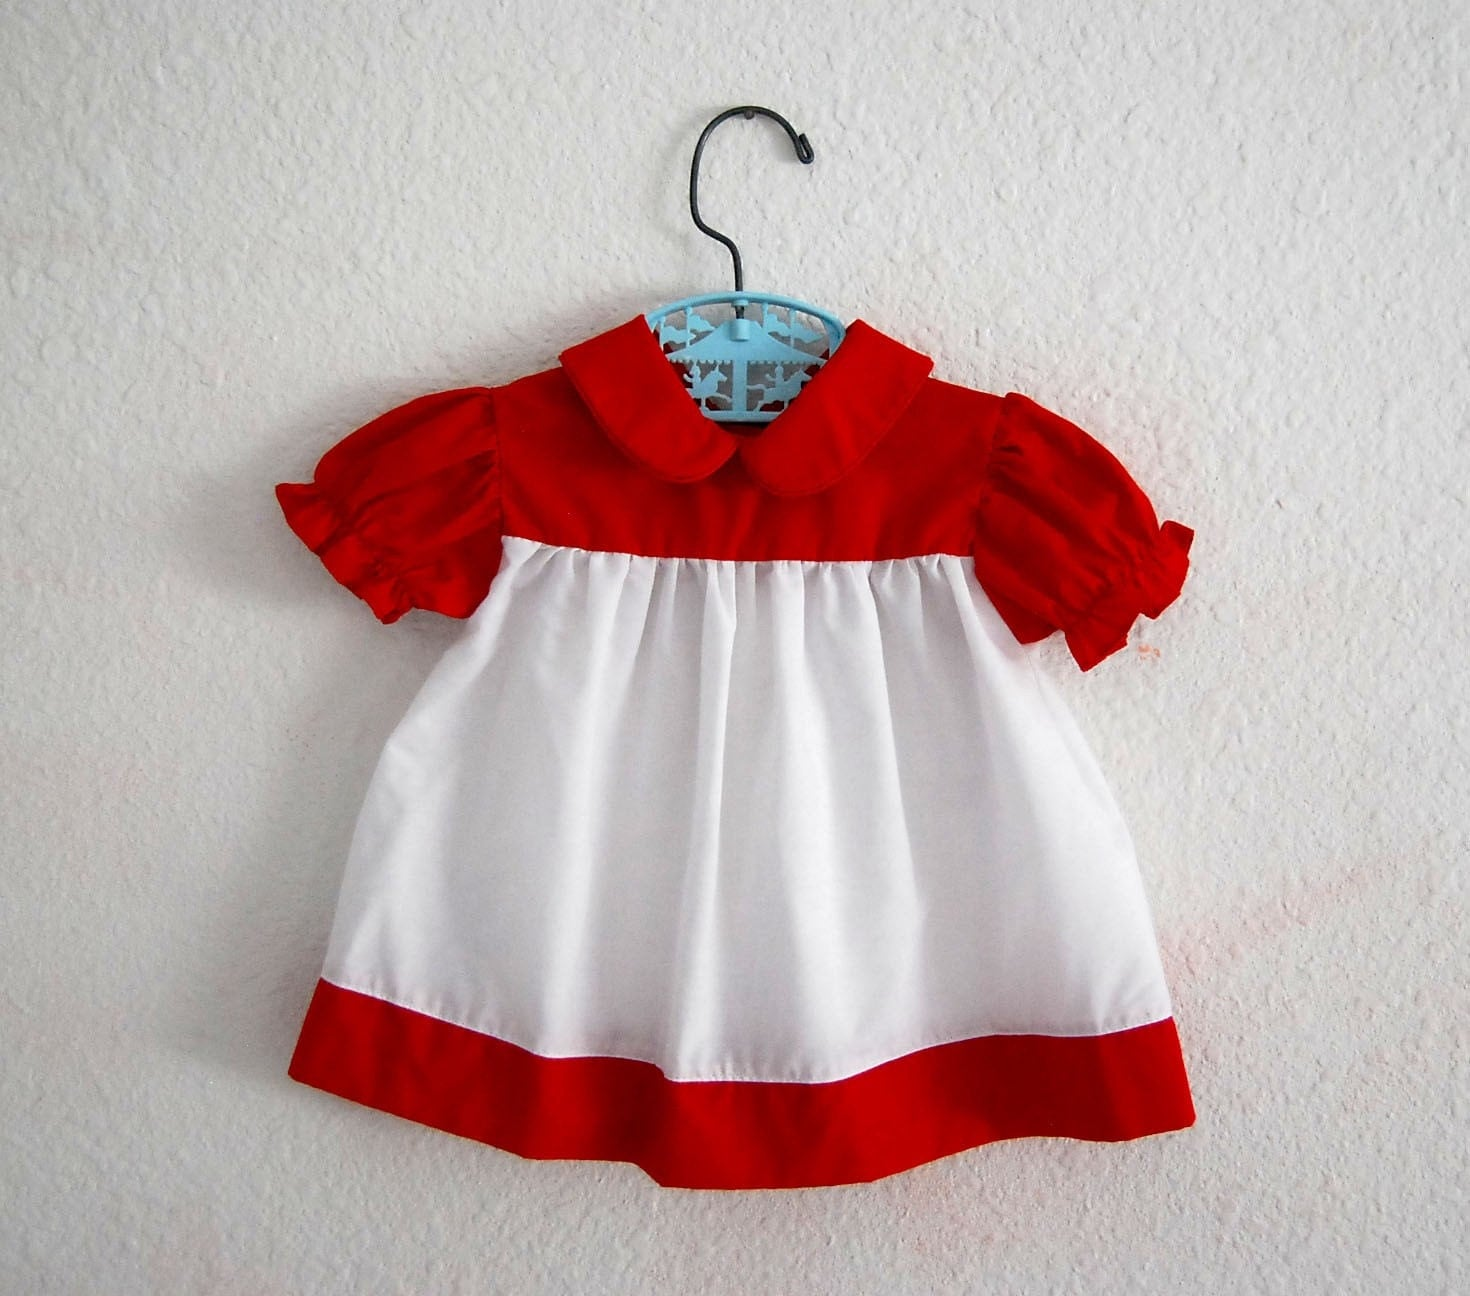 BABY n RED...vintage red and white ruffled dress